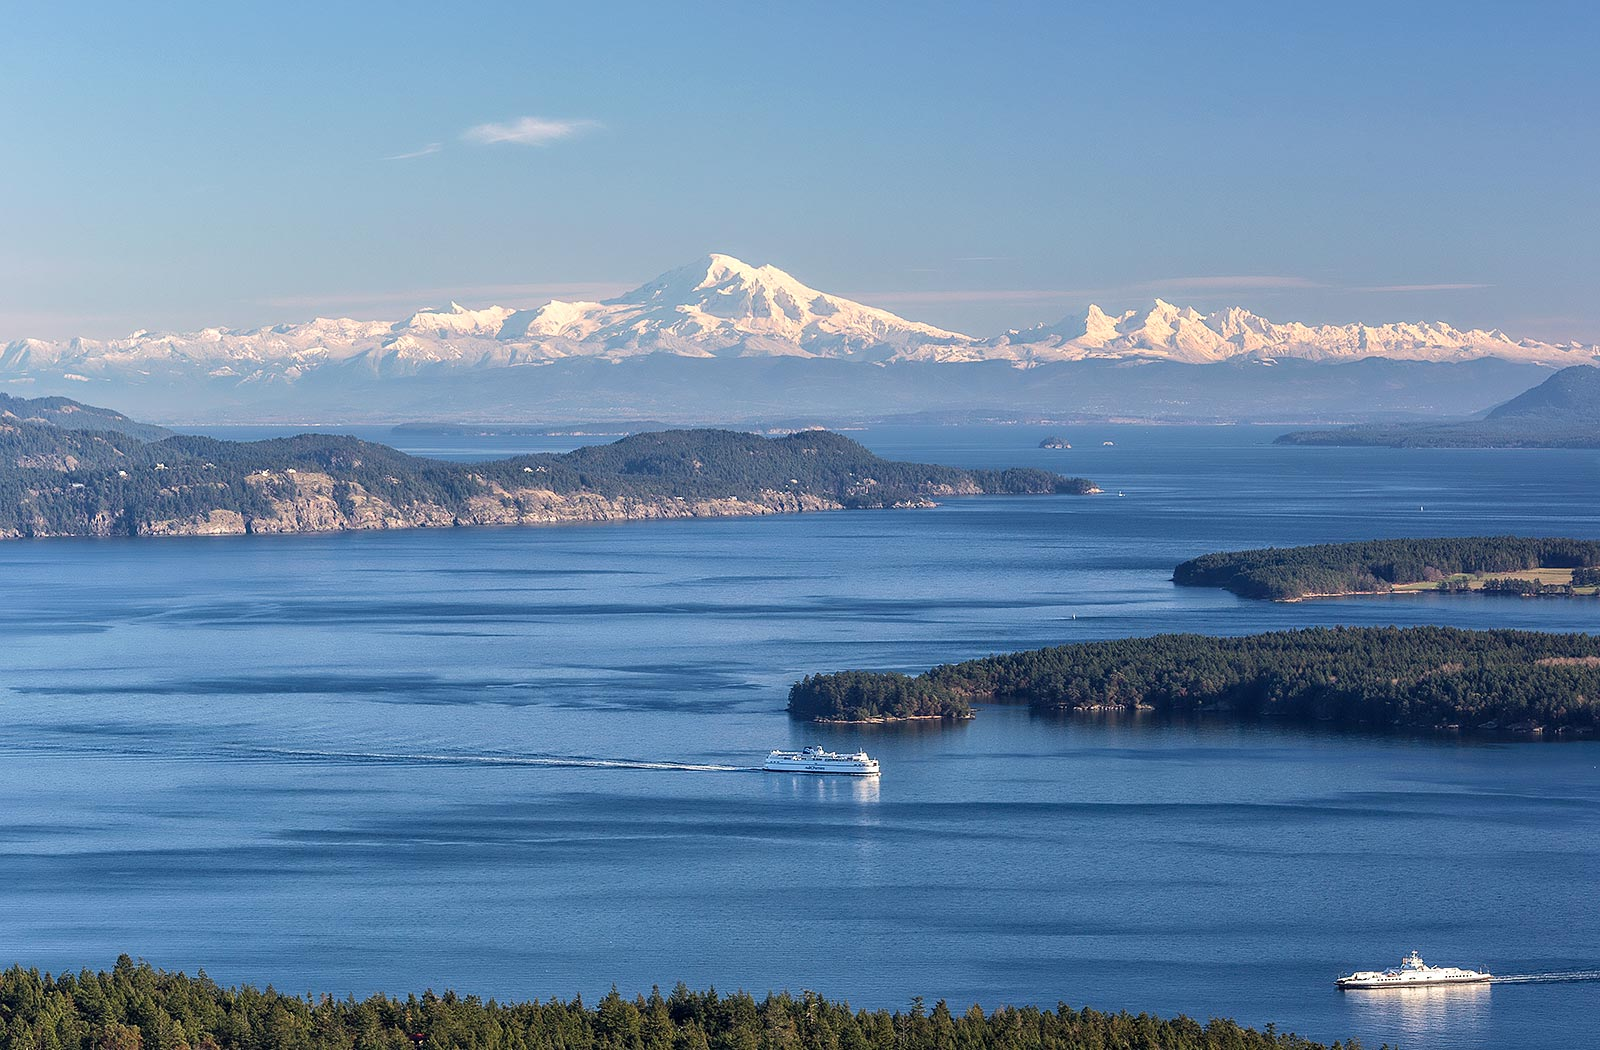 A Gulf Island view from Mount Tuam on south Salt Spring Island